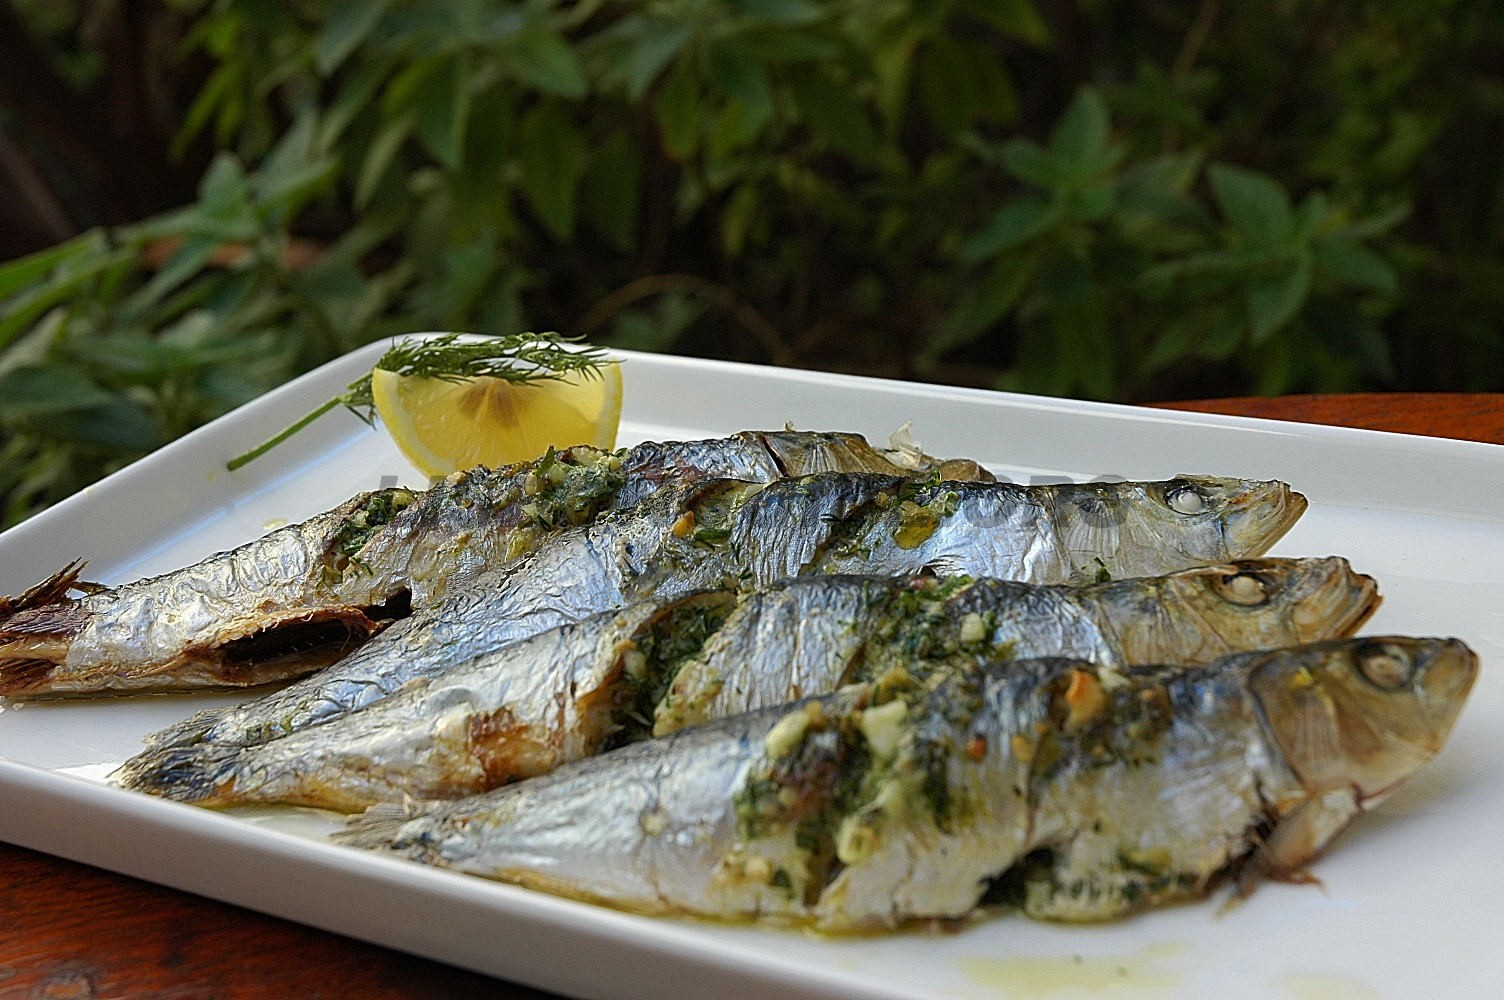 The real guide food and drink in portugal updated 2018 for Sardine lunch ideas